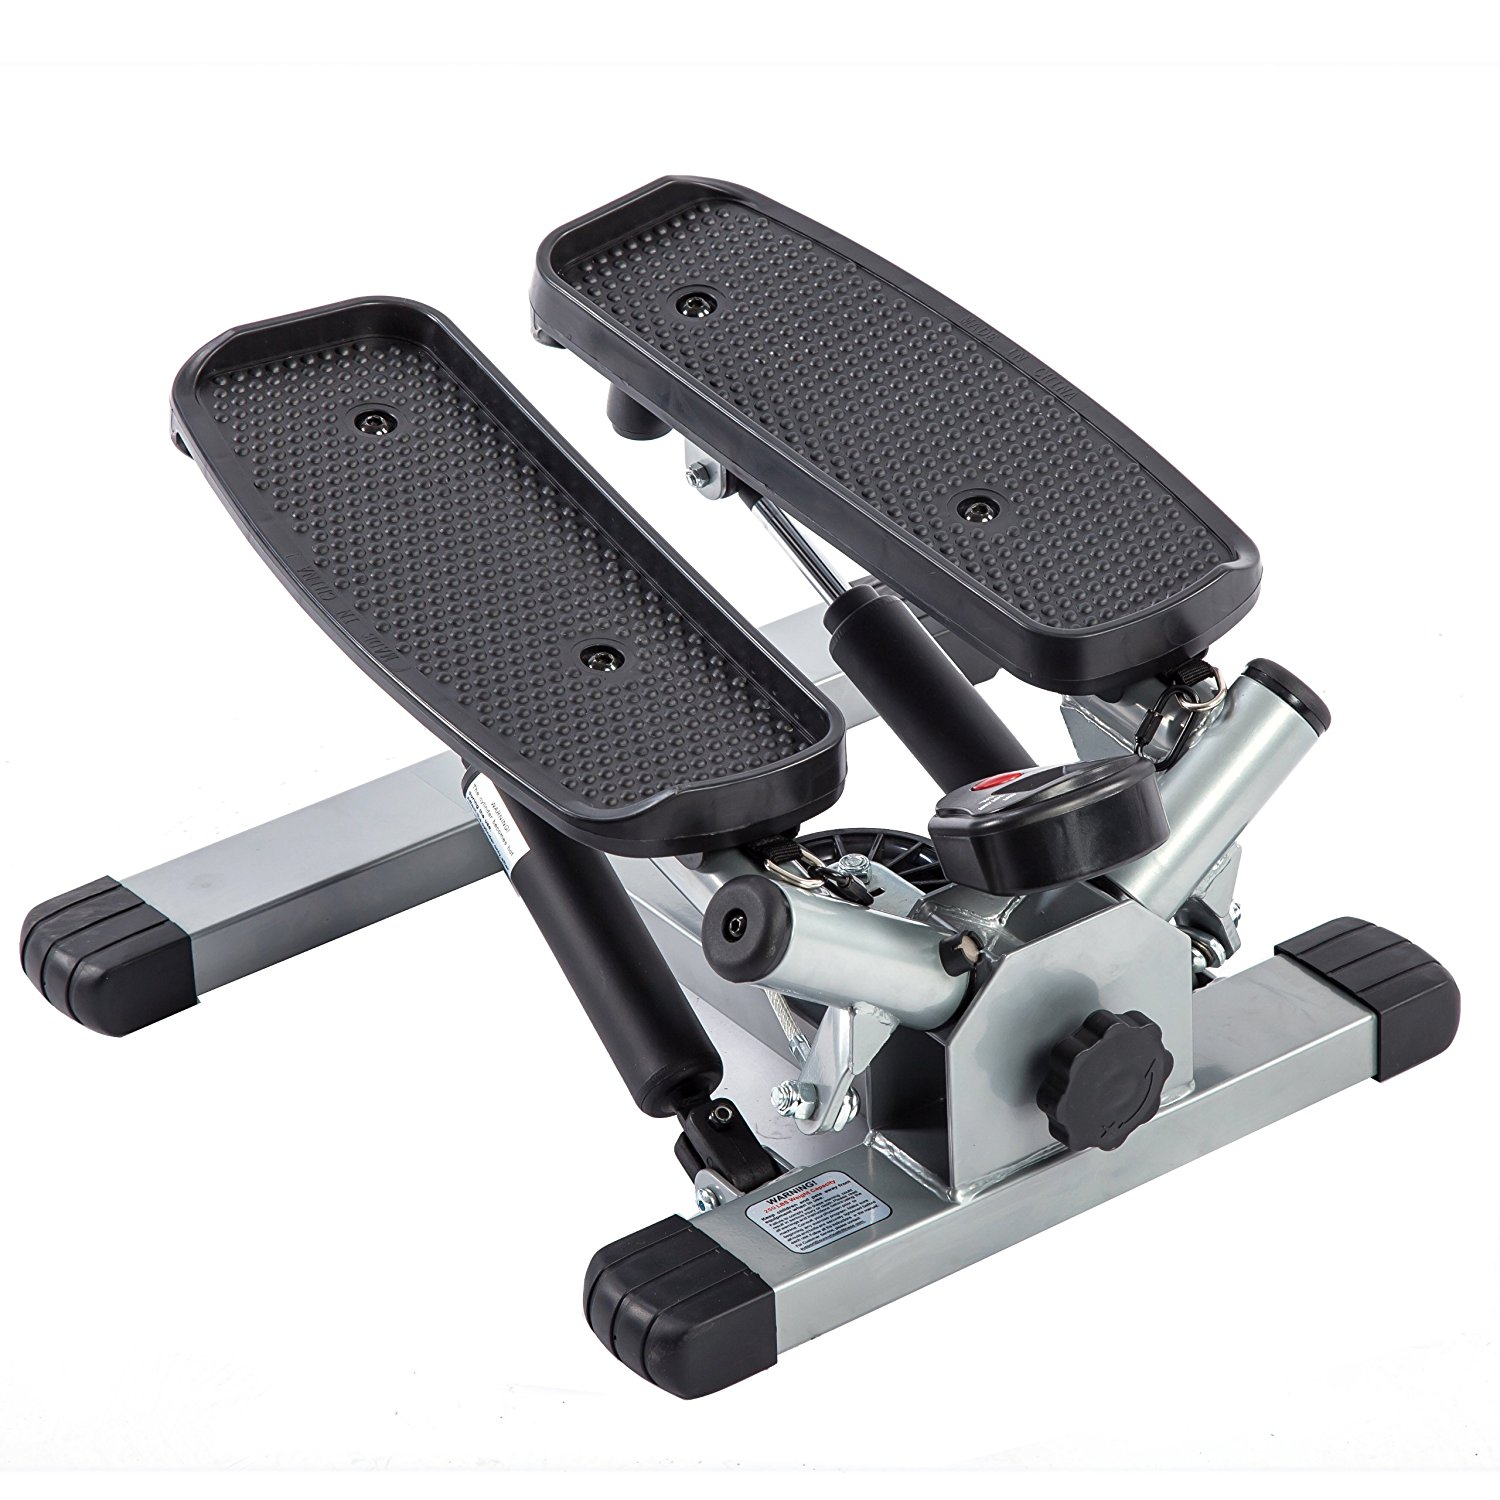 34acfbc05d4 Fitness Avenue: Sunny Health & Fitness Twist Stepper - NO. 045 ...